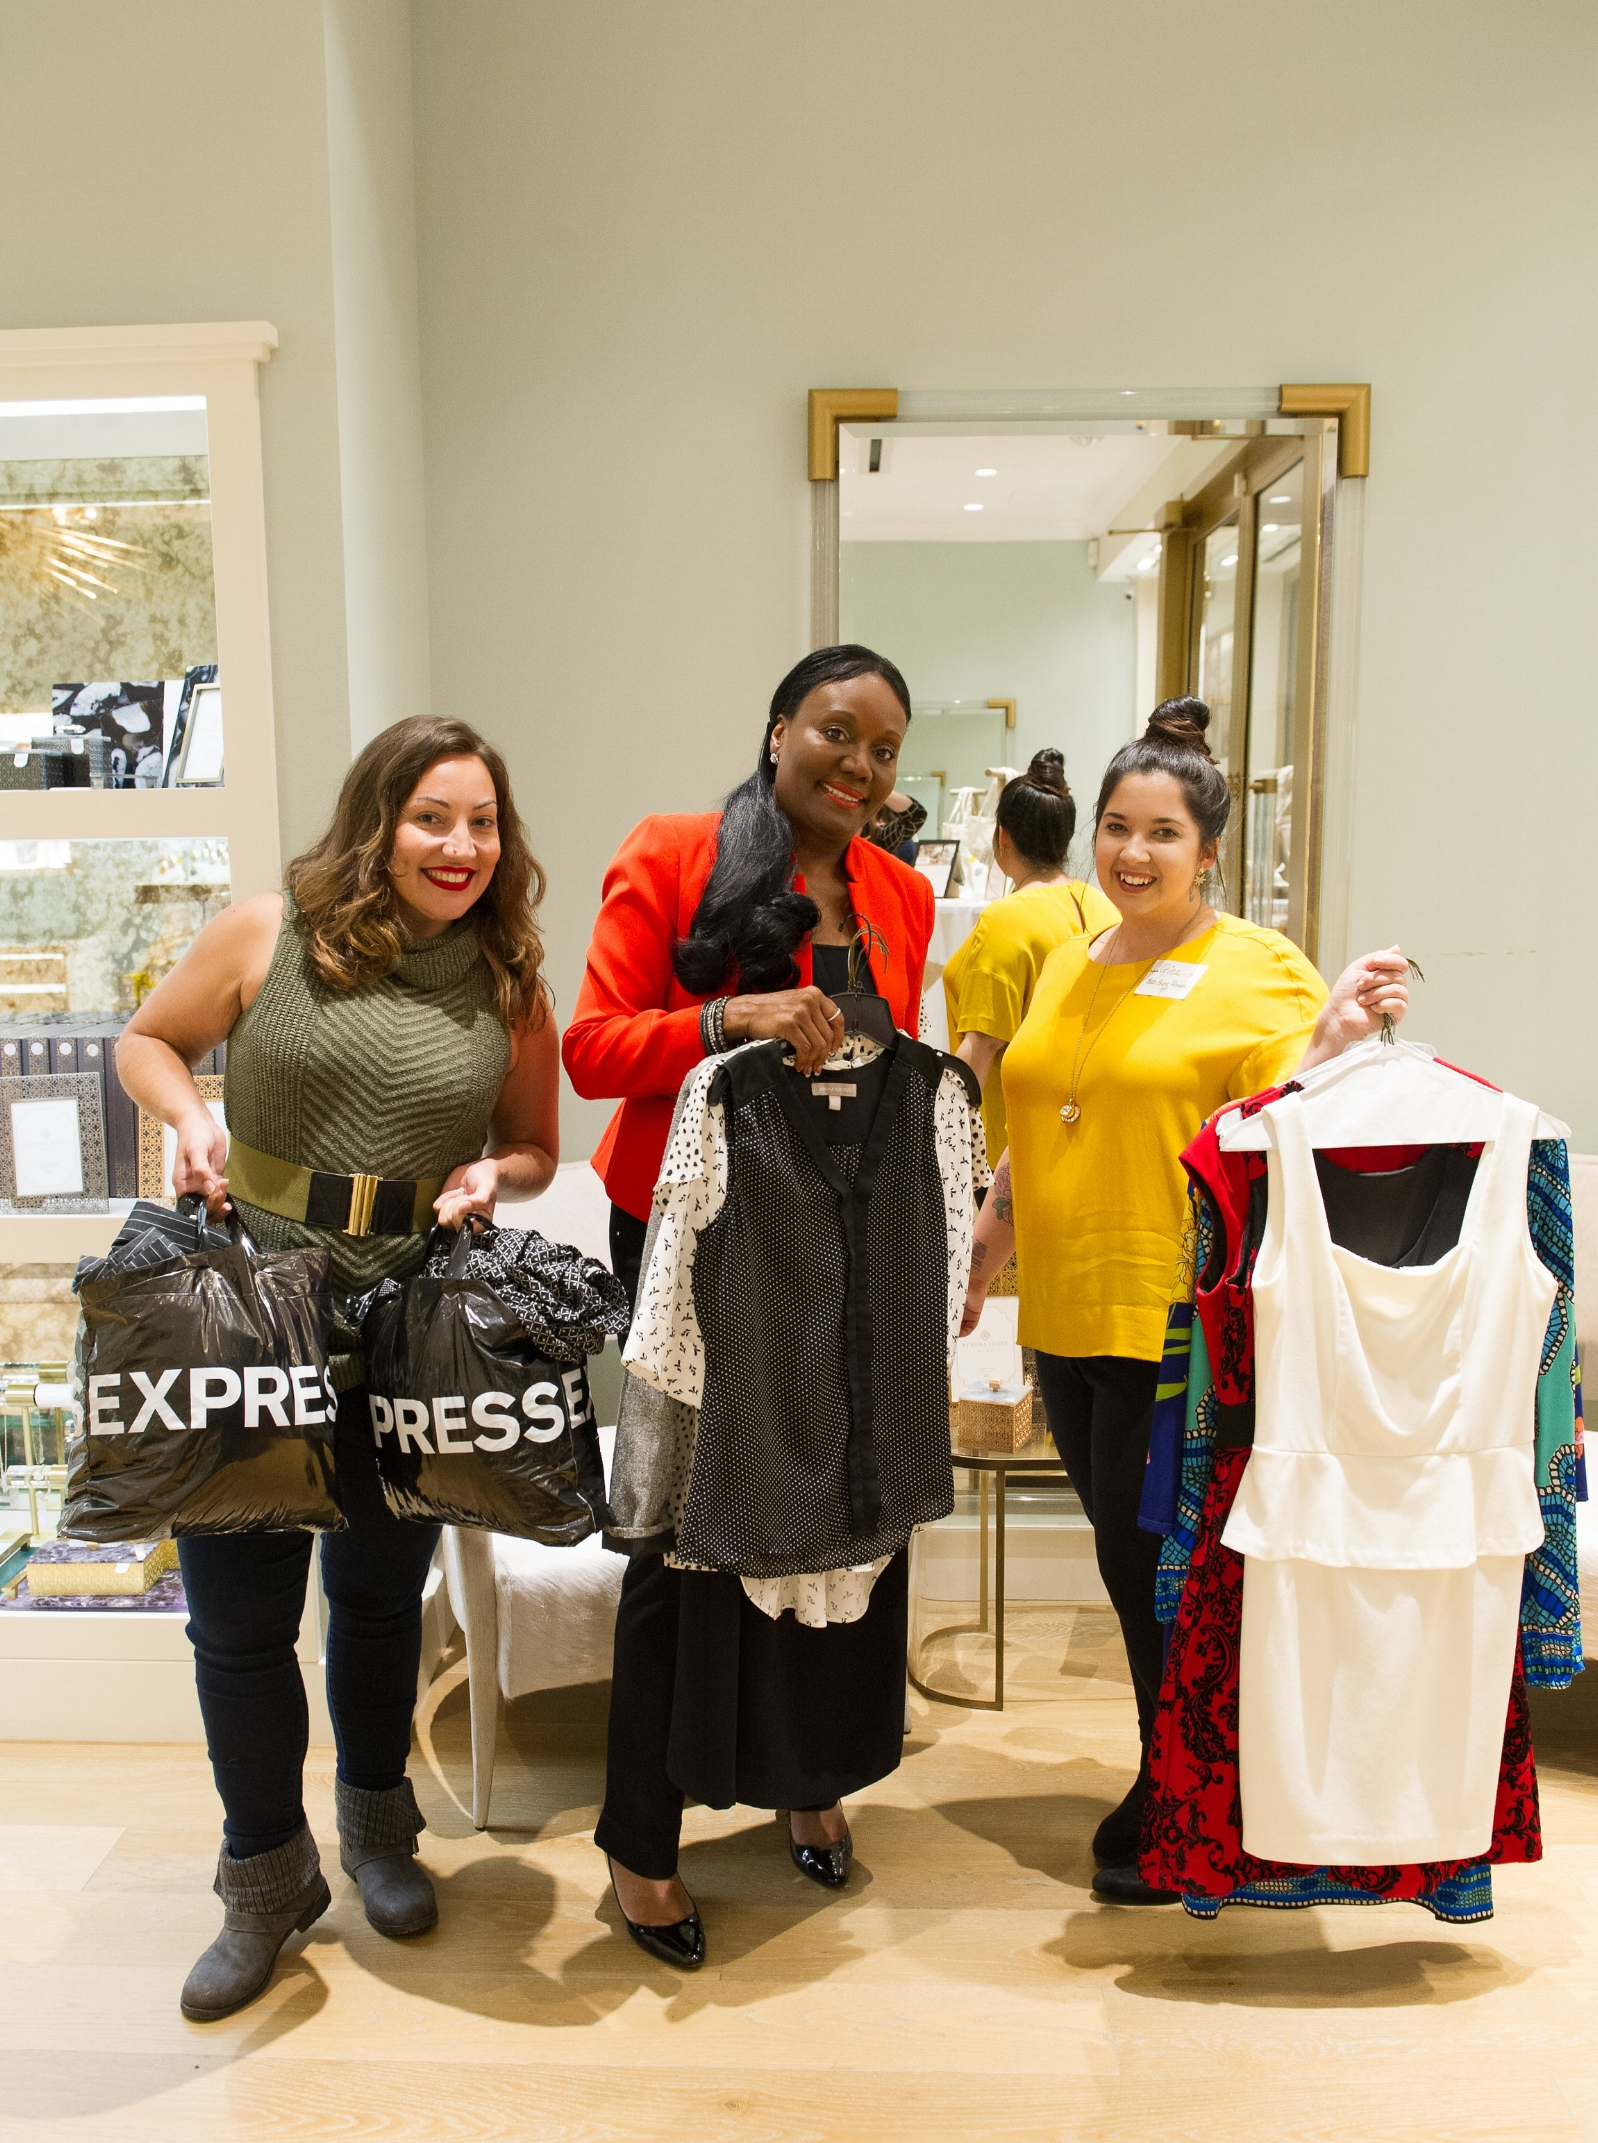 WE HOSTED A DONATION DRIVE FOR DRESS FOR SUCCESS AT A BOSS BABE CLUB COMMUNITY EVENT FOR WOMEN ENTREPRENEURS AT KENDRA SCOTT IN 2017. OUR TEAM IS POSING WITH JUDY BENSINGER, VICE PRESIDENT OF THE BOARD OF DIRECTORS OF DFS. PHOTO BY THE DASHING GINGER.